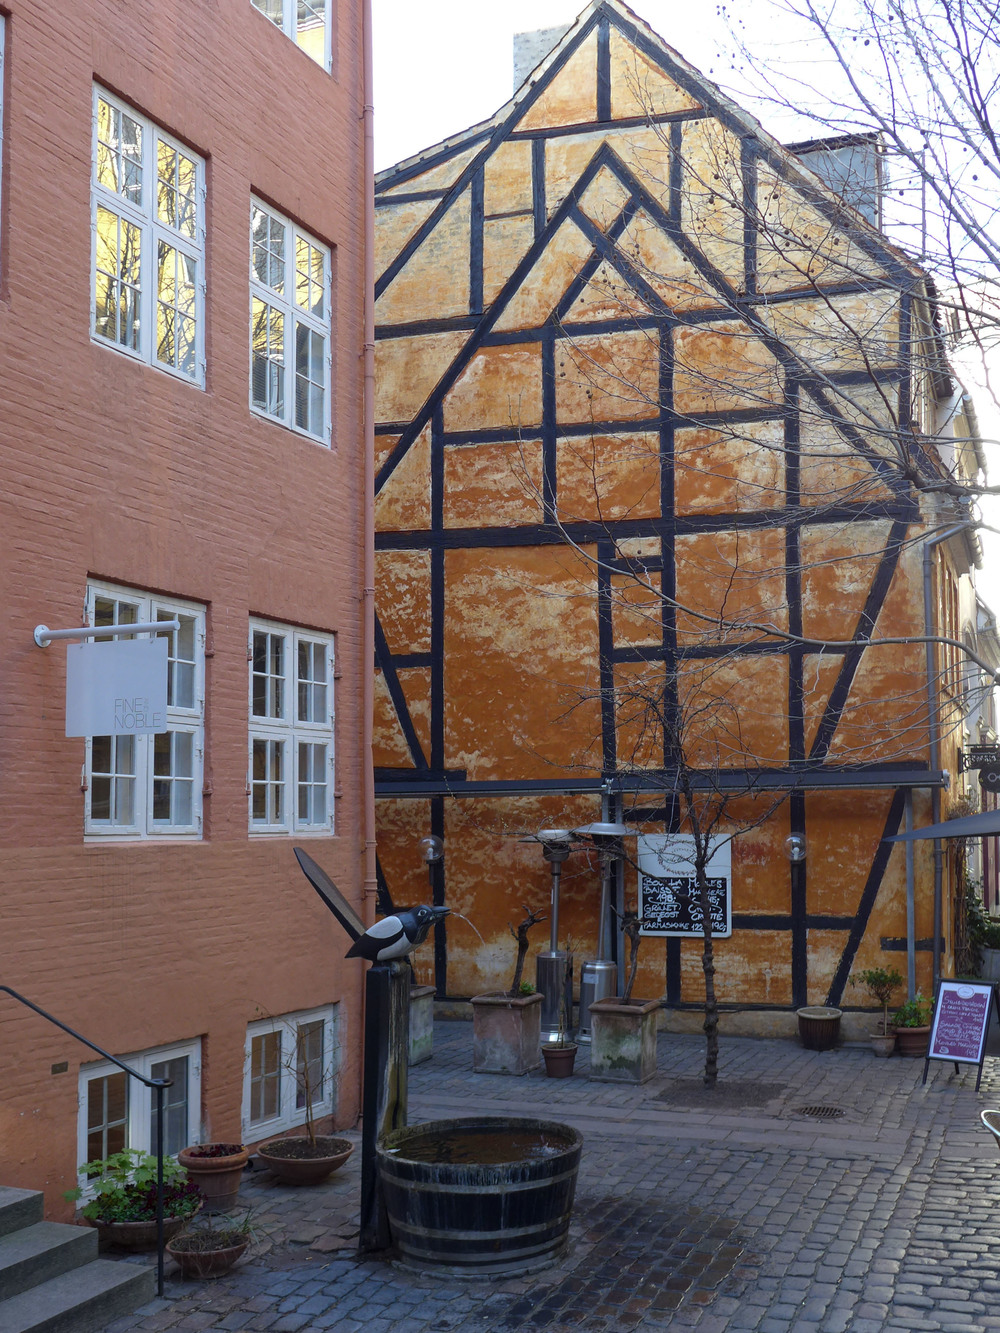 A gable end that shows that this building was heightened but in a much simpler way